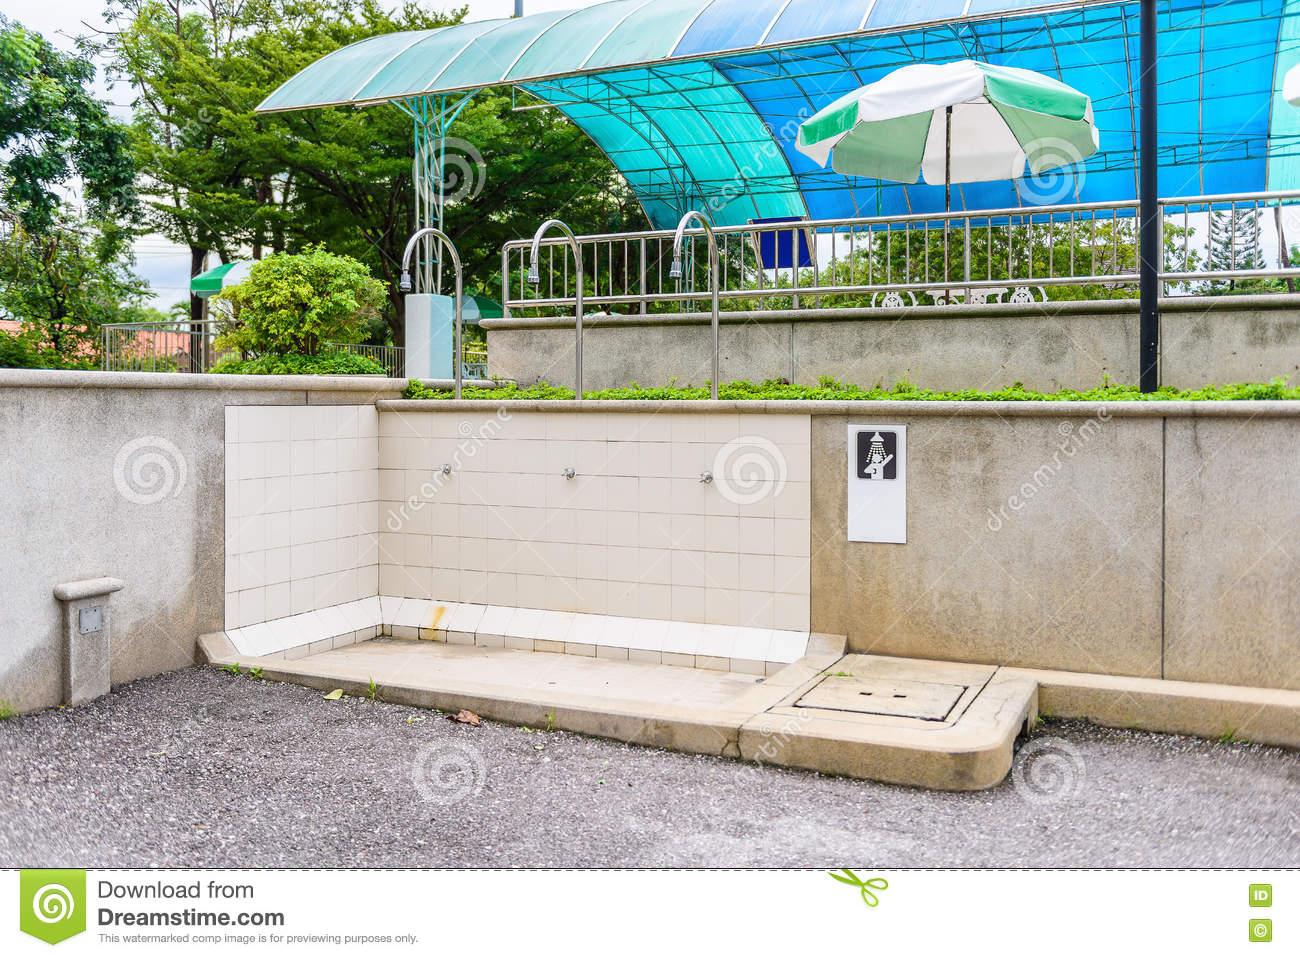 shower heads and faucets in outdoor washing area stock photo